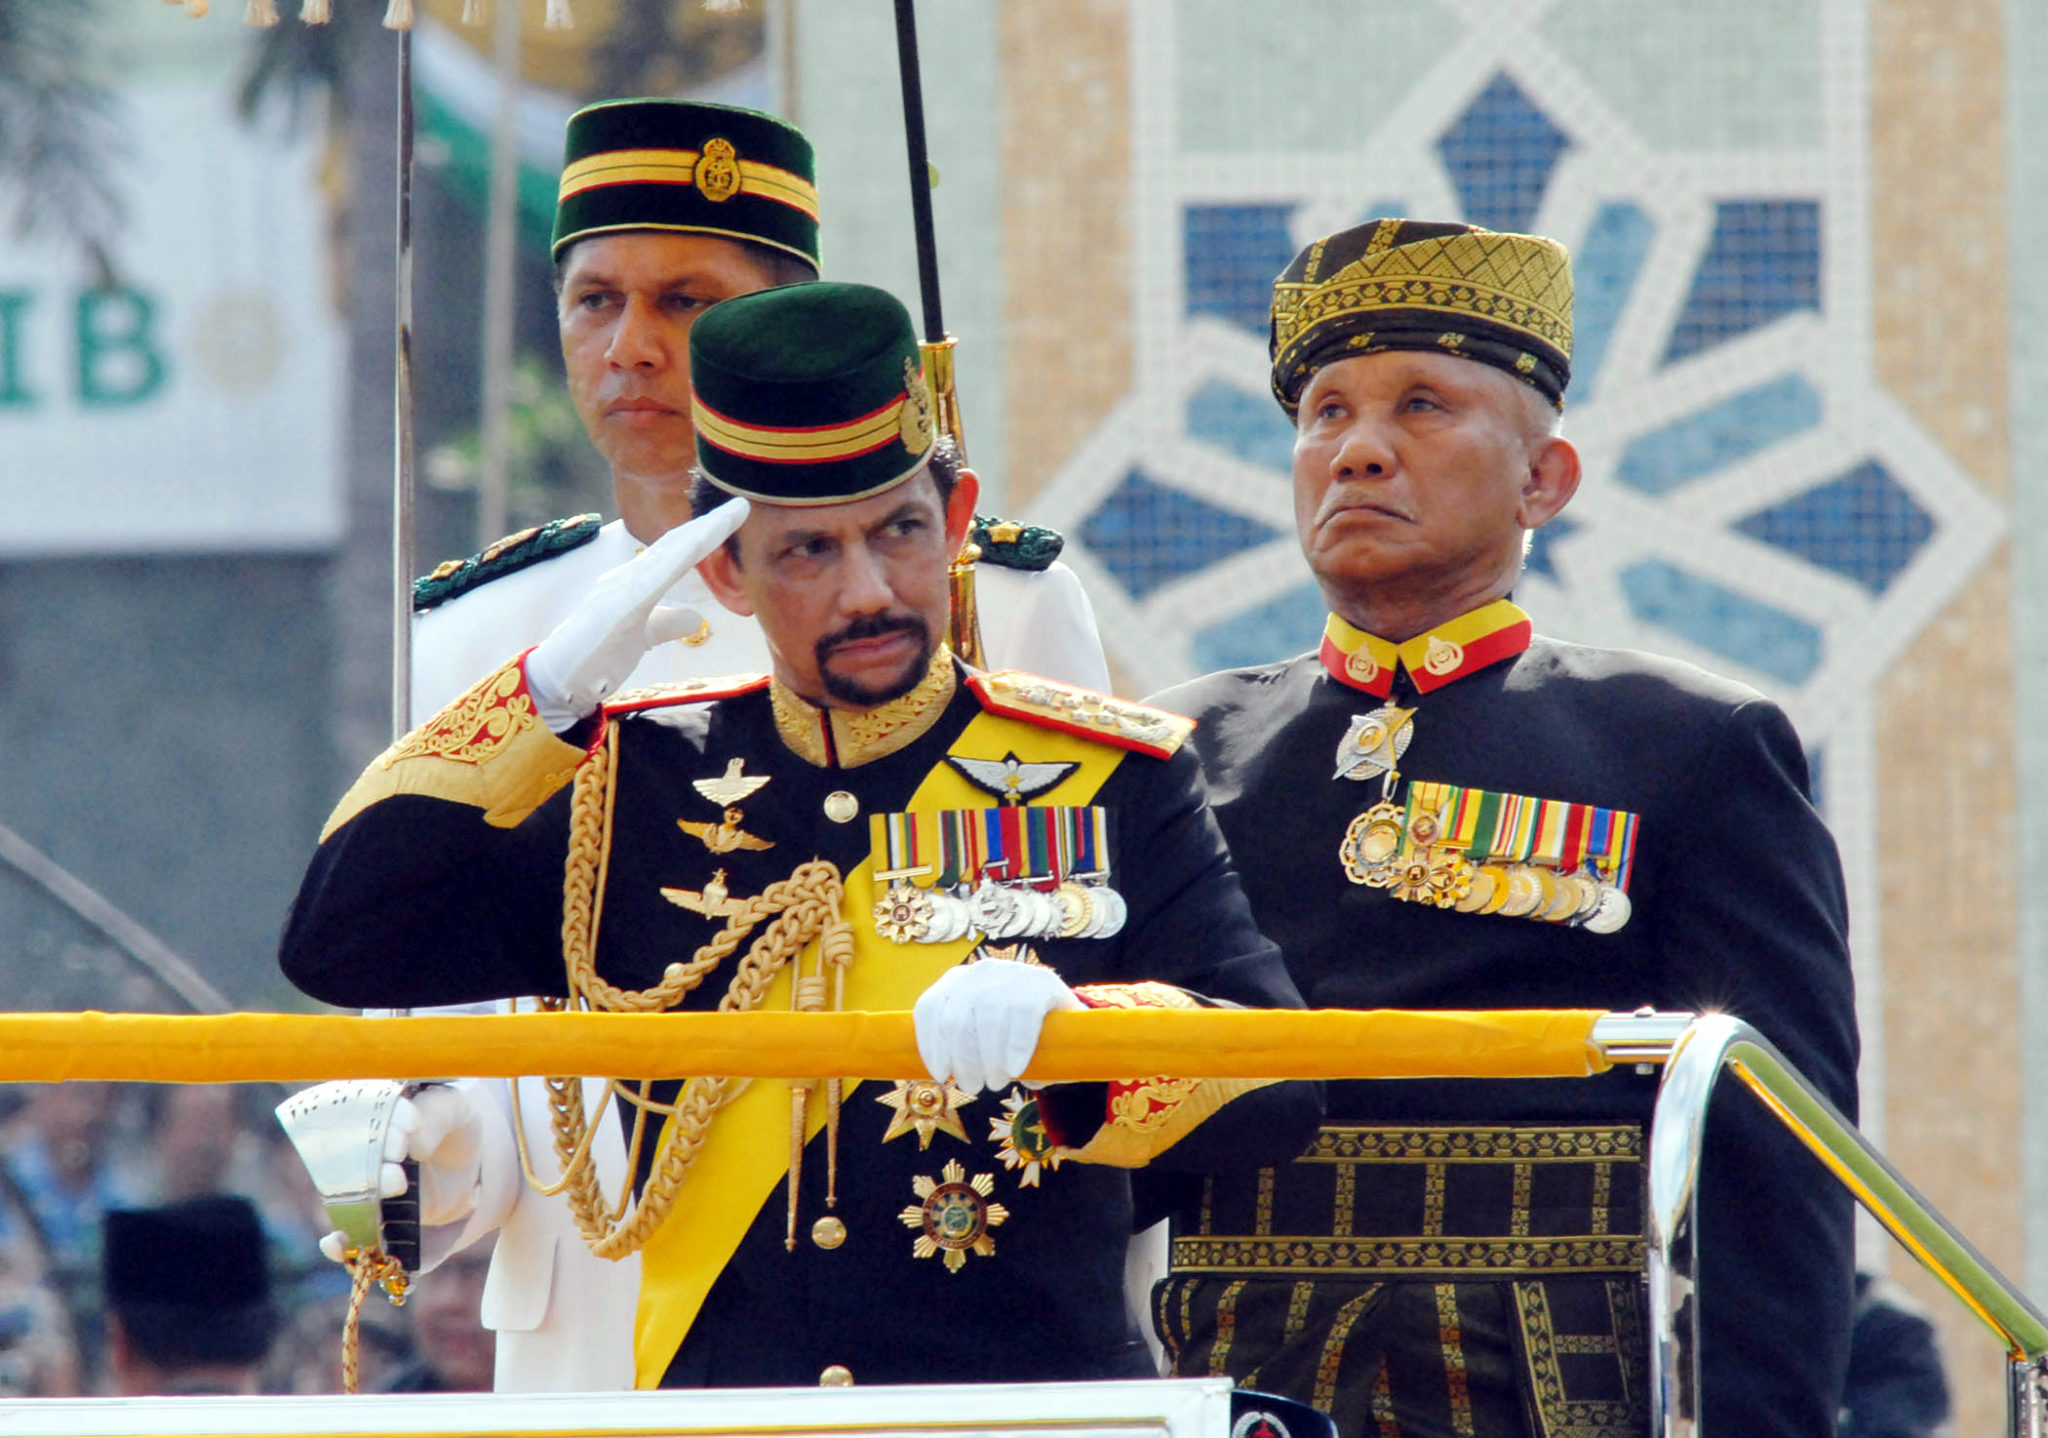 Brunei Darussalam: Claims of 'preventive' stoning and amputation laws are callous and reckless